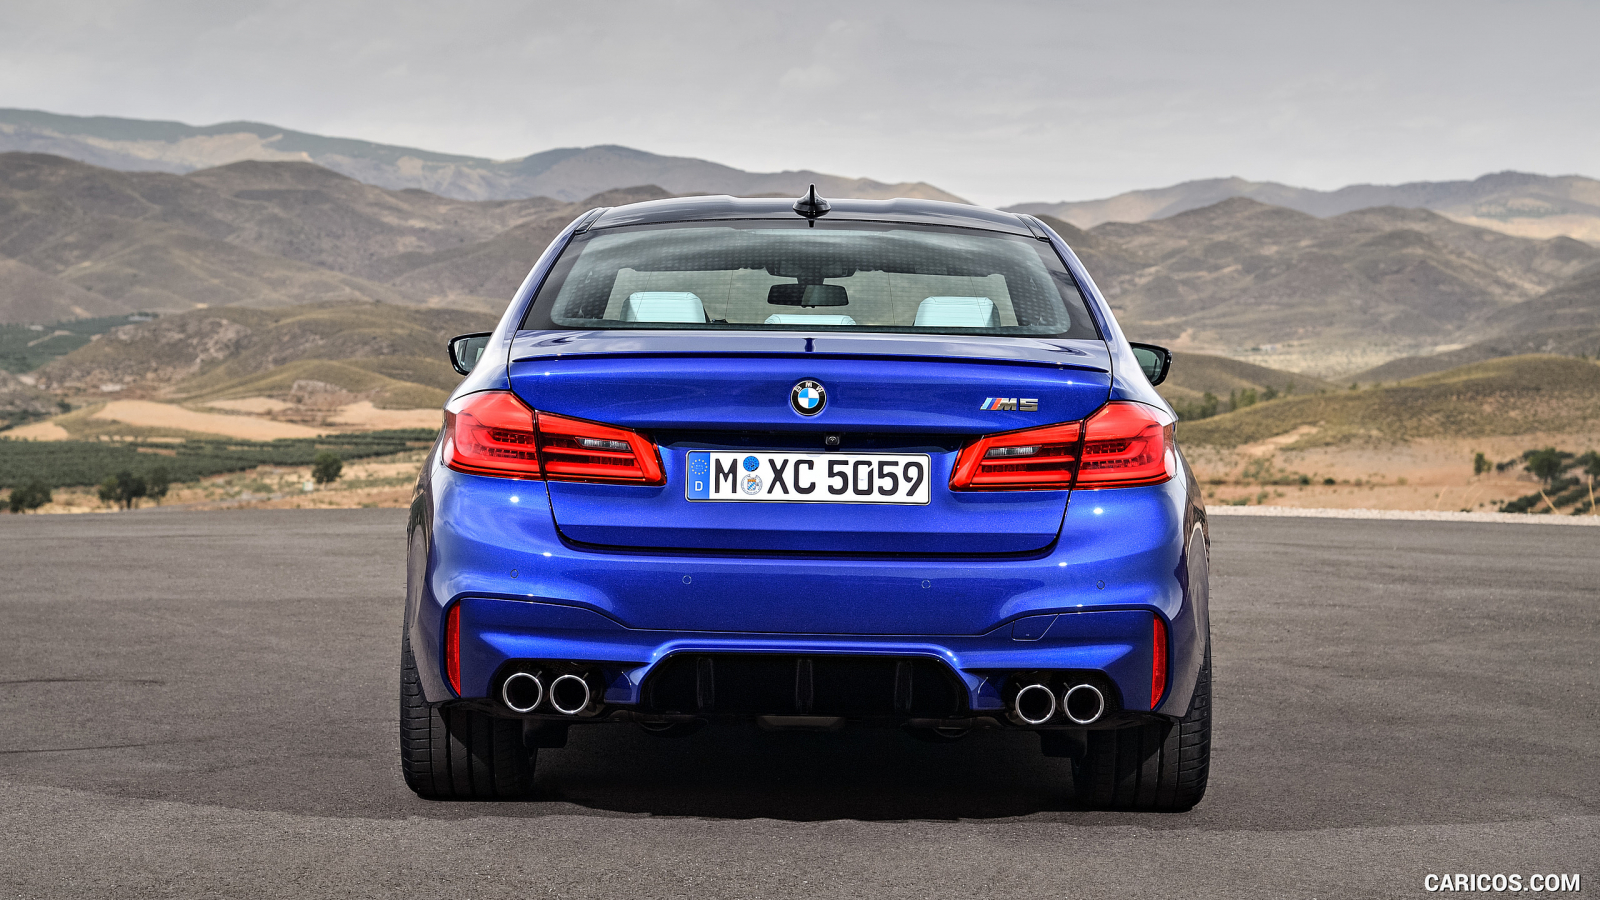 Free Download 2018 Bmw M5 F90 Rear Hd Wallpaper 23